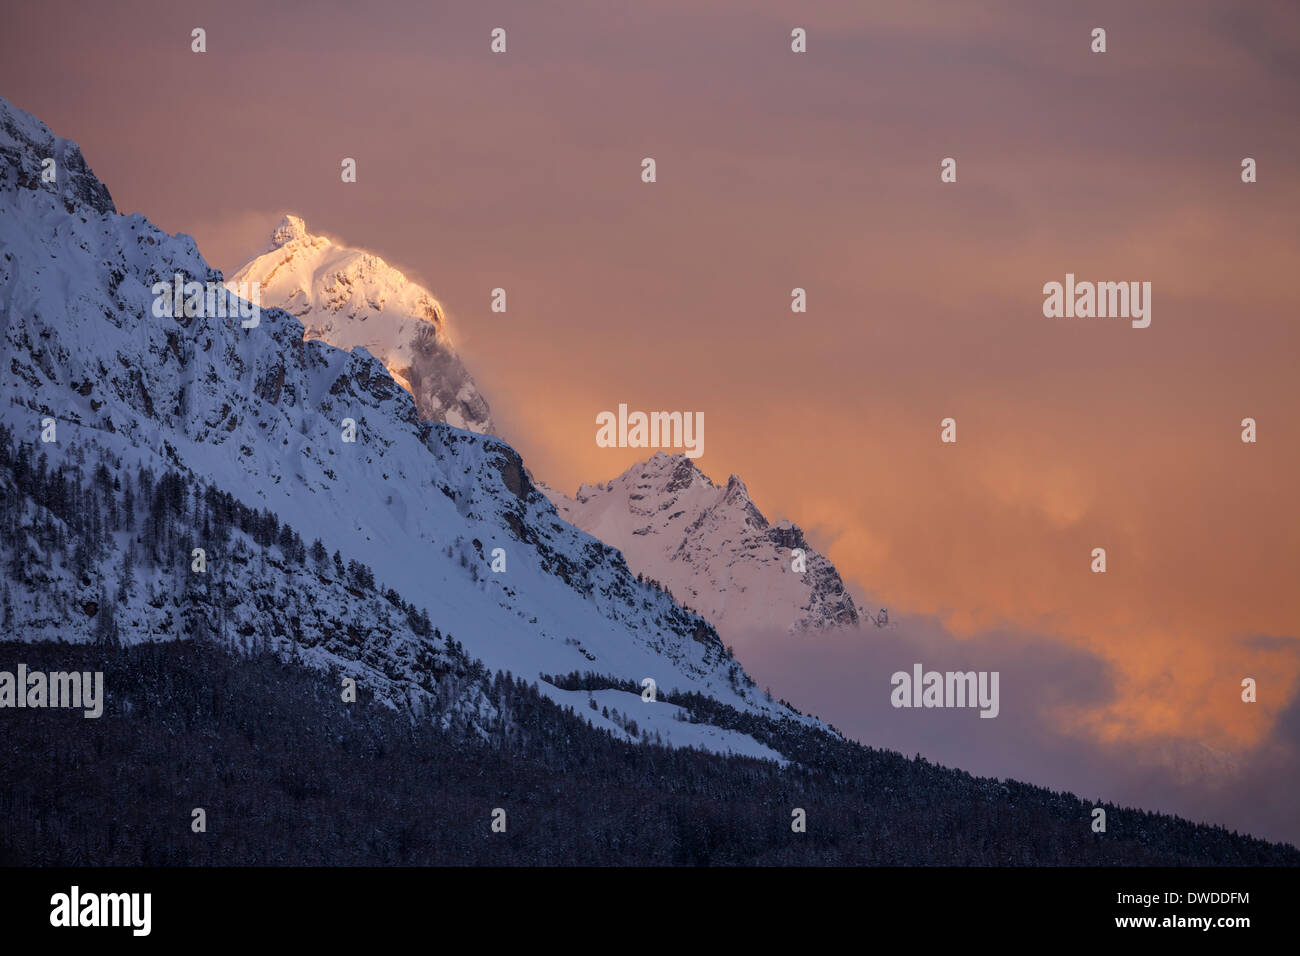 The last sun on mount Antelao in Cortina D'Ampezzo, Dolomiti, Italy. - Stock Image